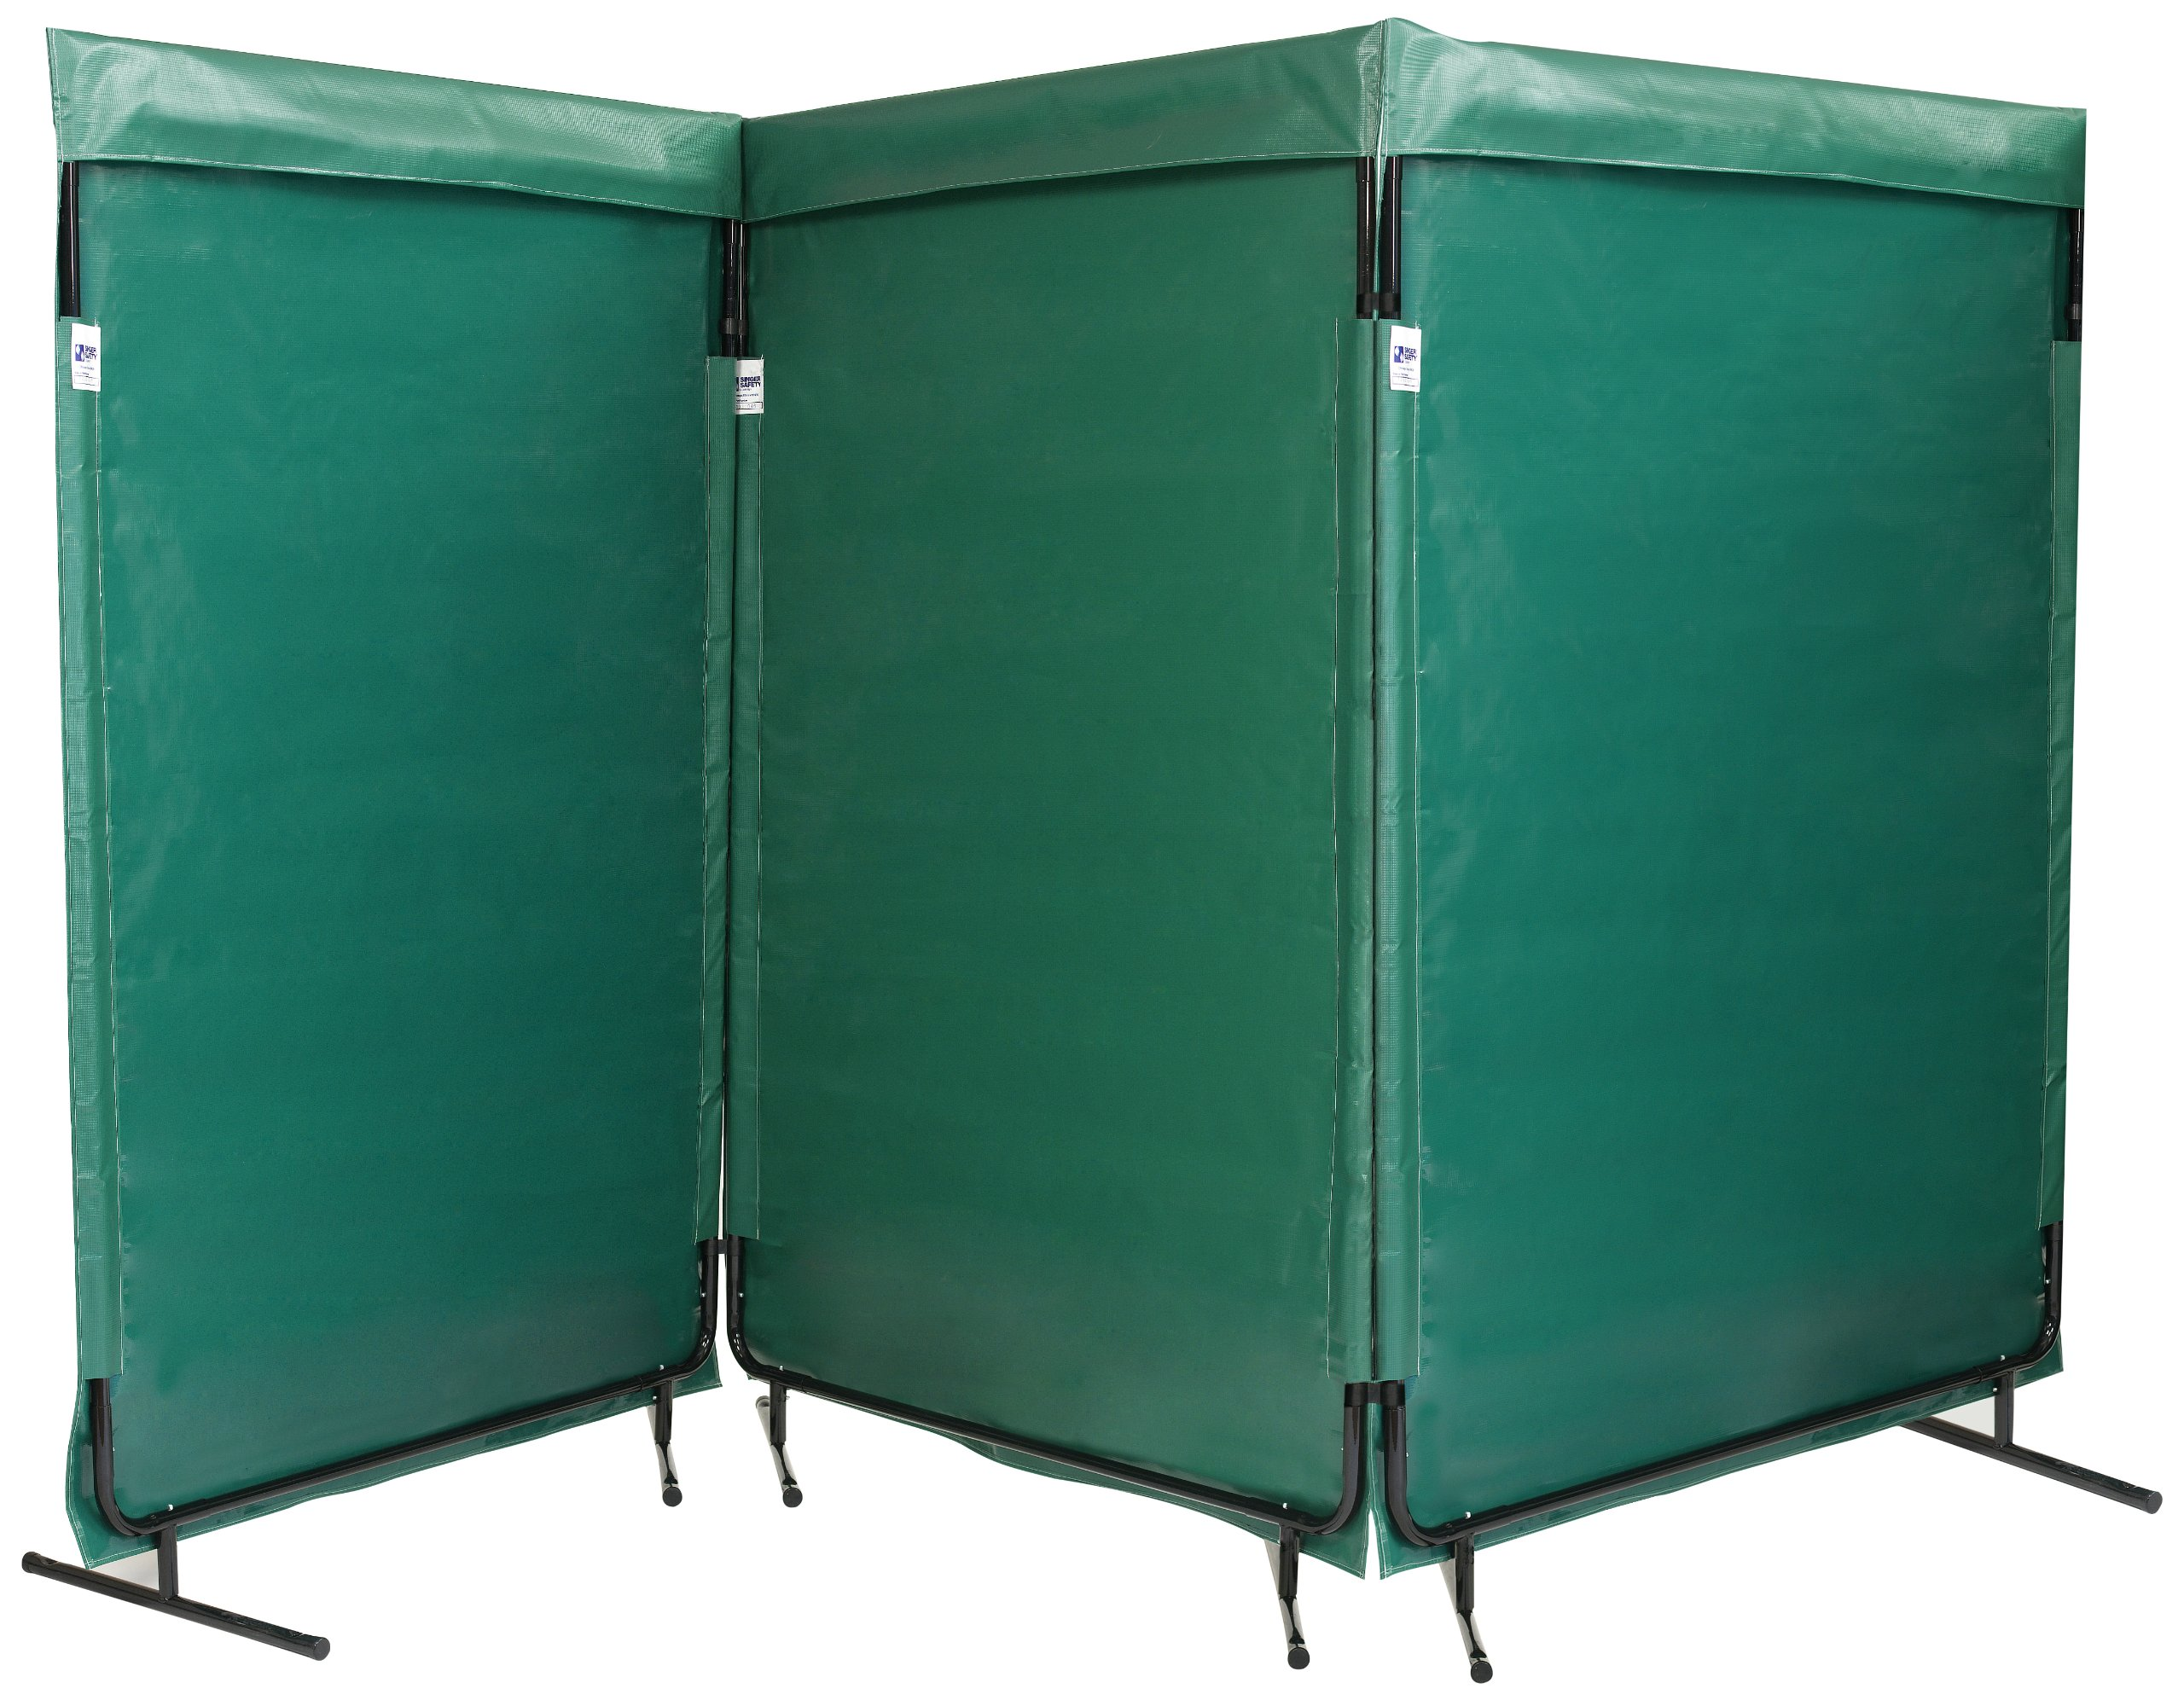 Singer Safety Green Multiple Panel Screen, 12' Width x 6' Height